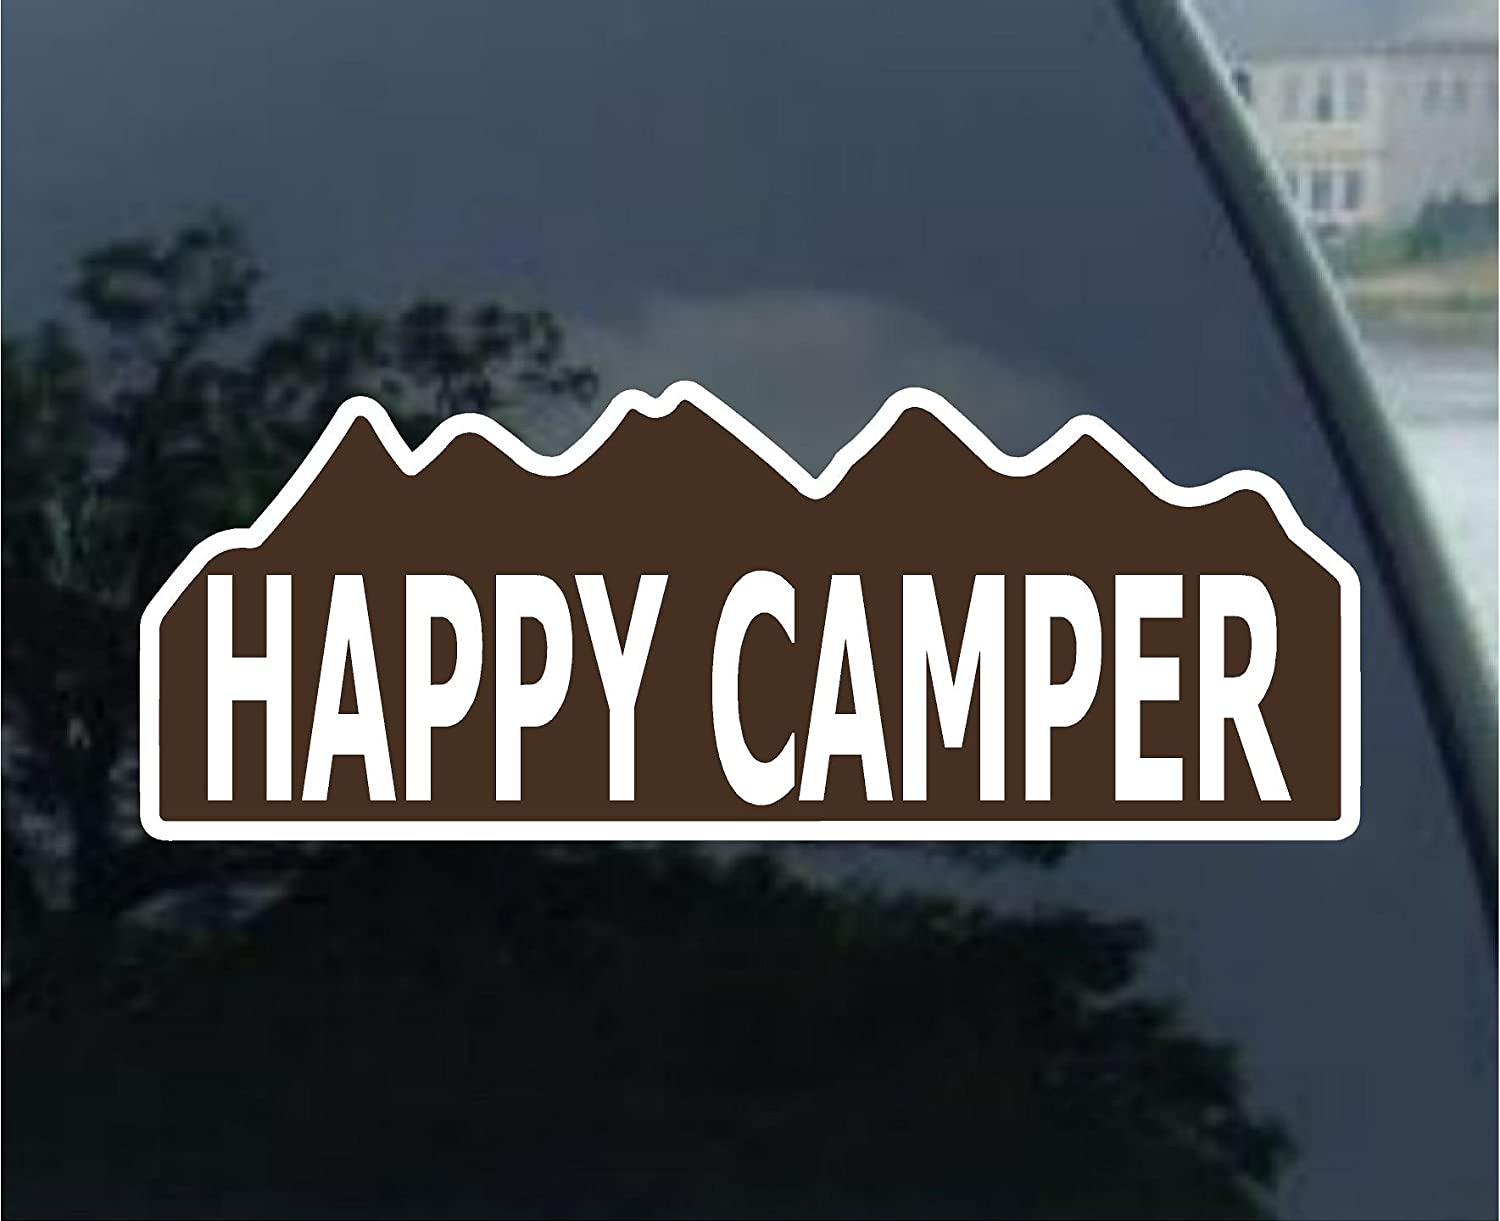 Funny Camping Bumper Stickers